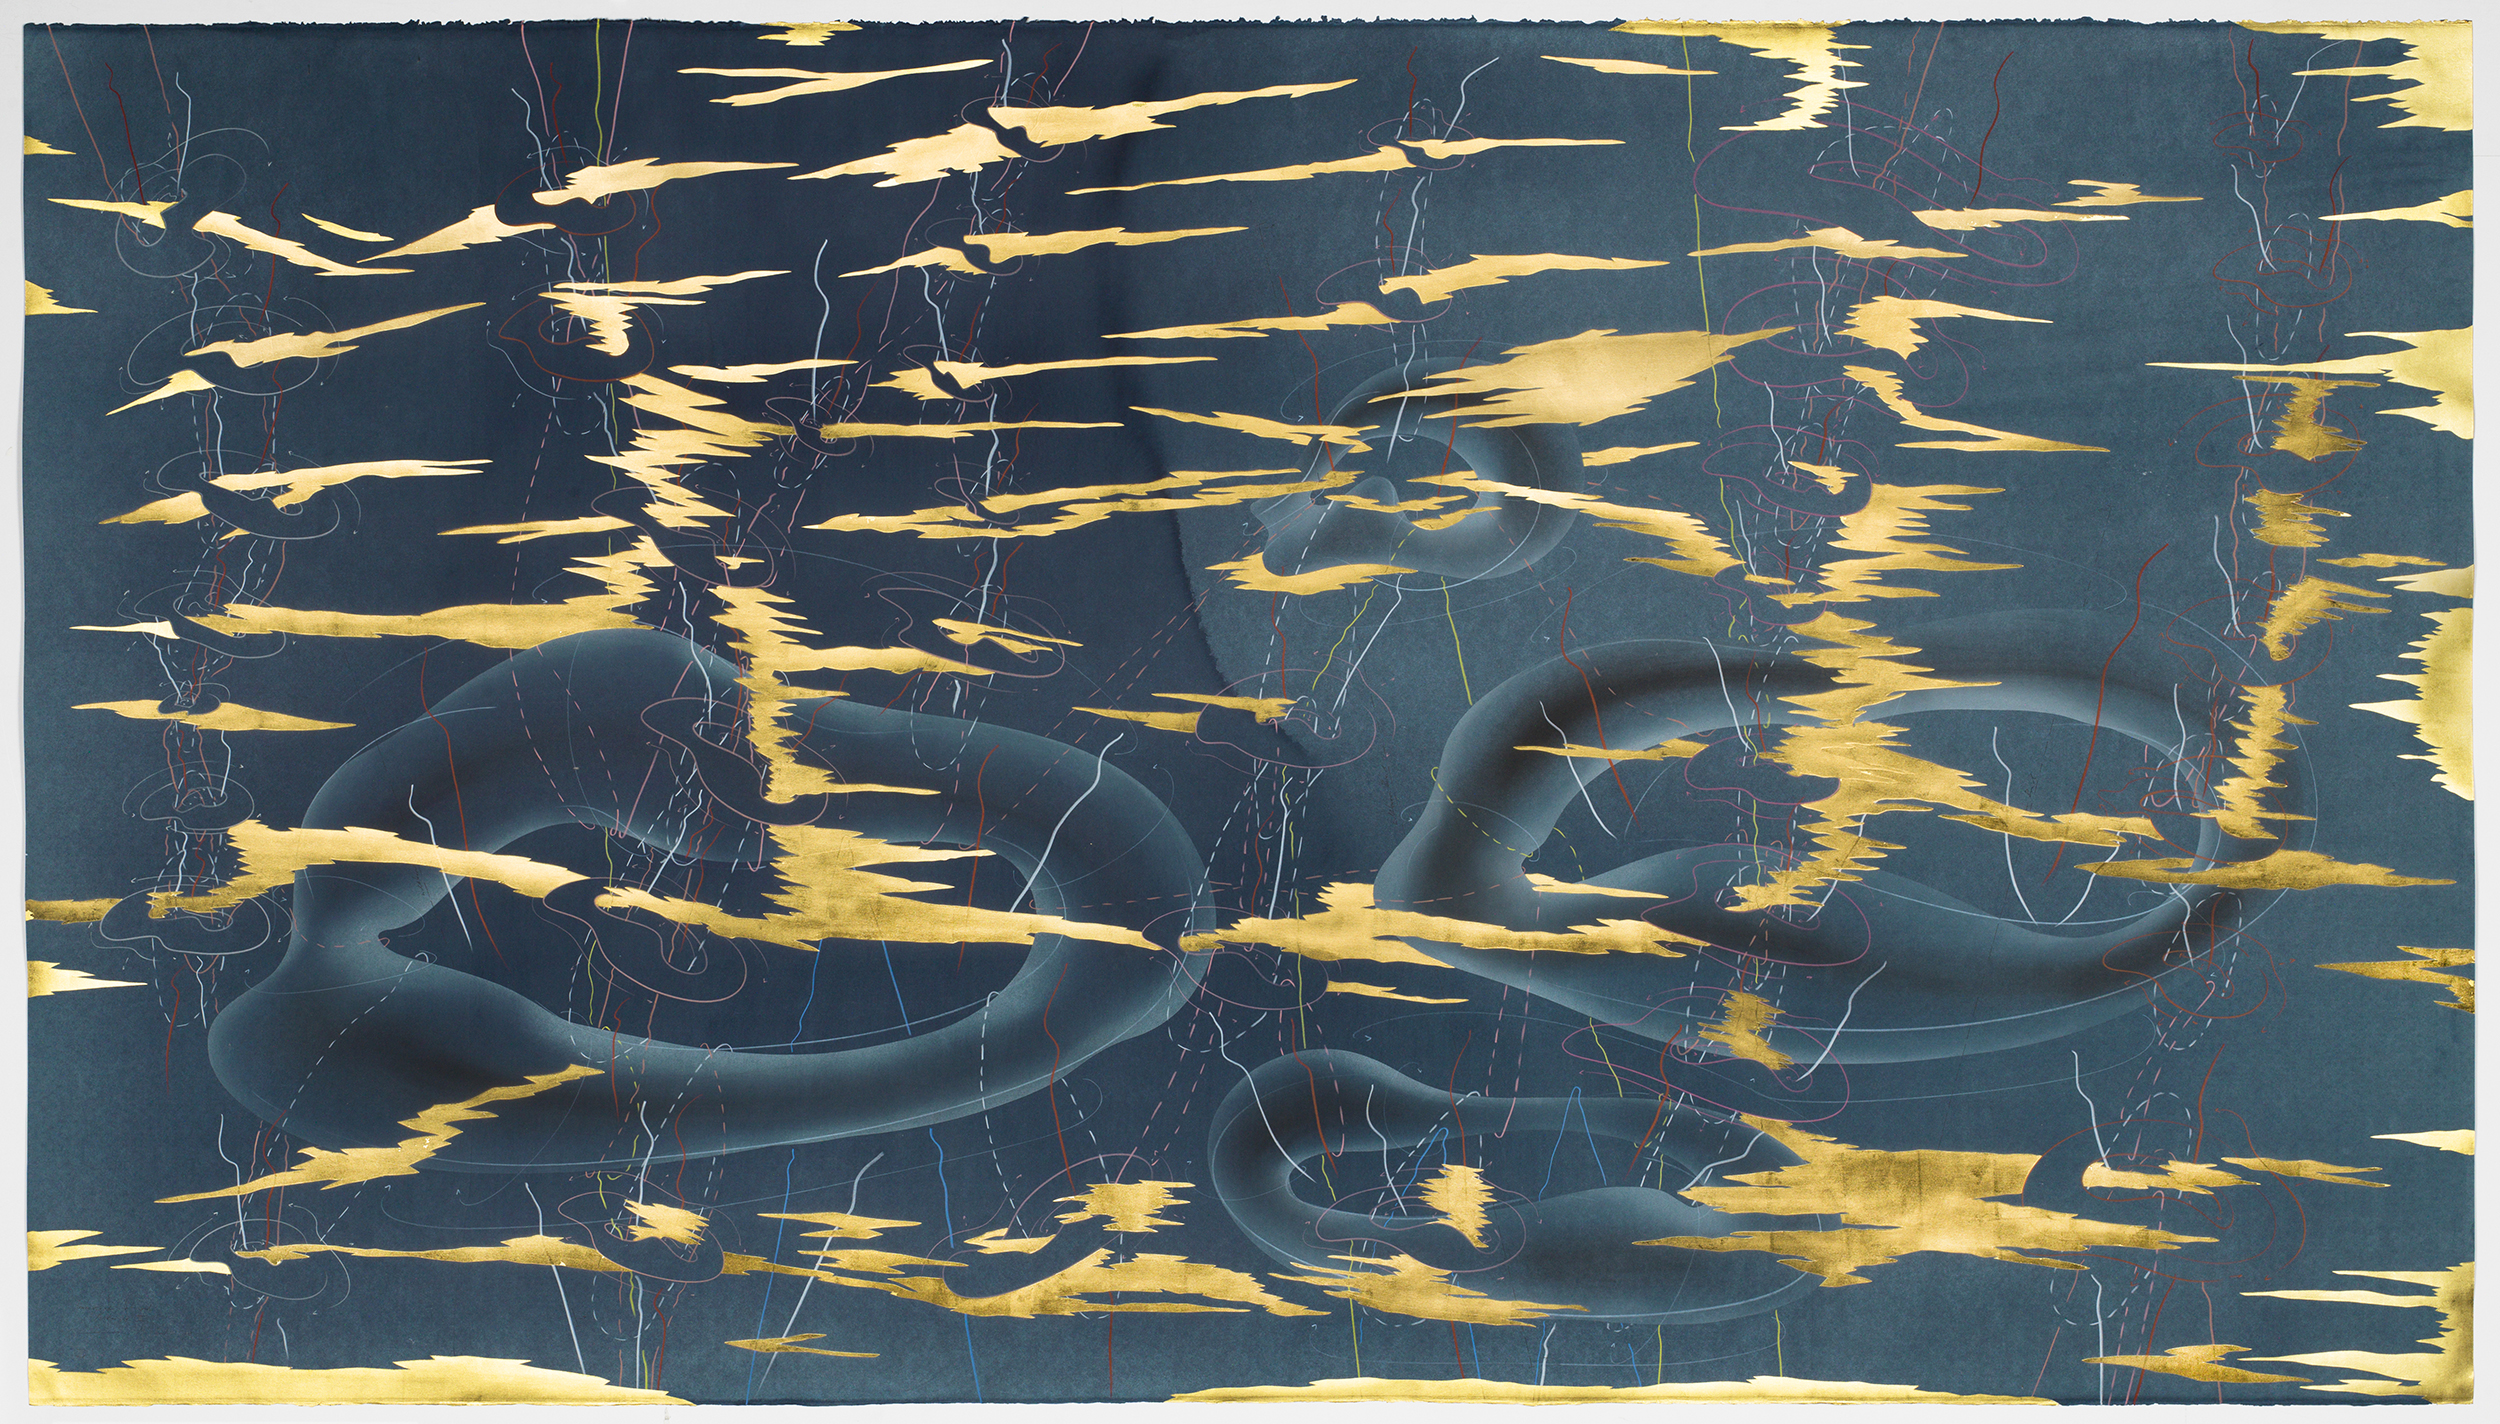 Jorinde Voigt, Immersive Integral Midnight III, 2018, Ink, gold leaf, pastel, oil, chalks, pencil on paper © Jorinde Voigt. Courtesy the artist and David Nolan Gallery, New York